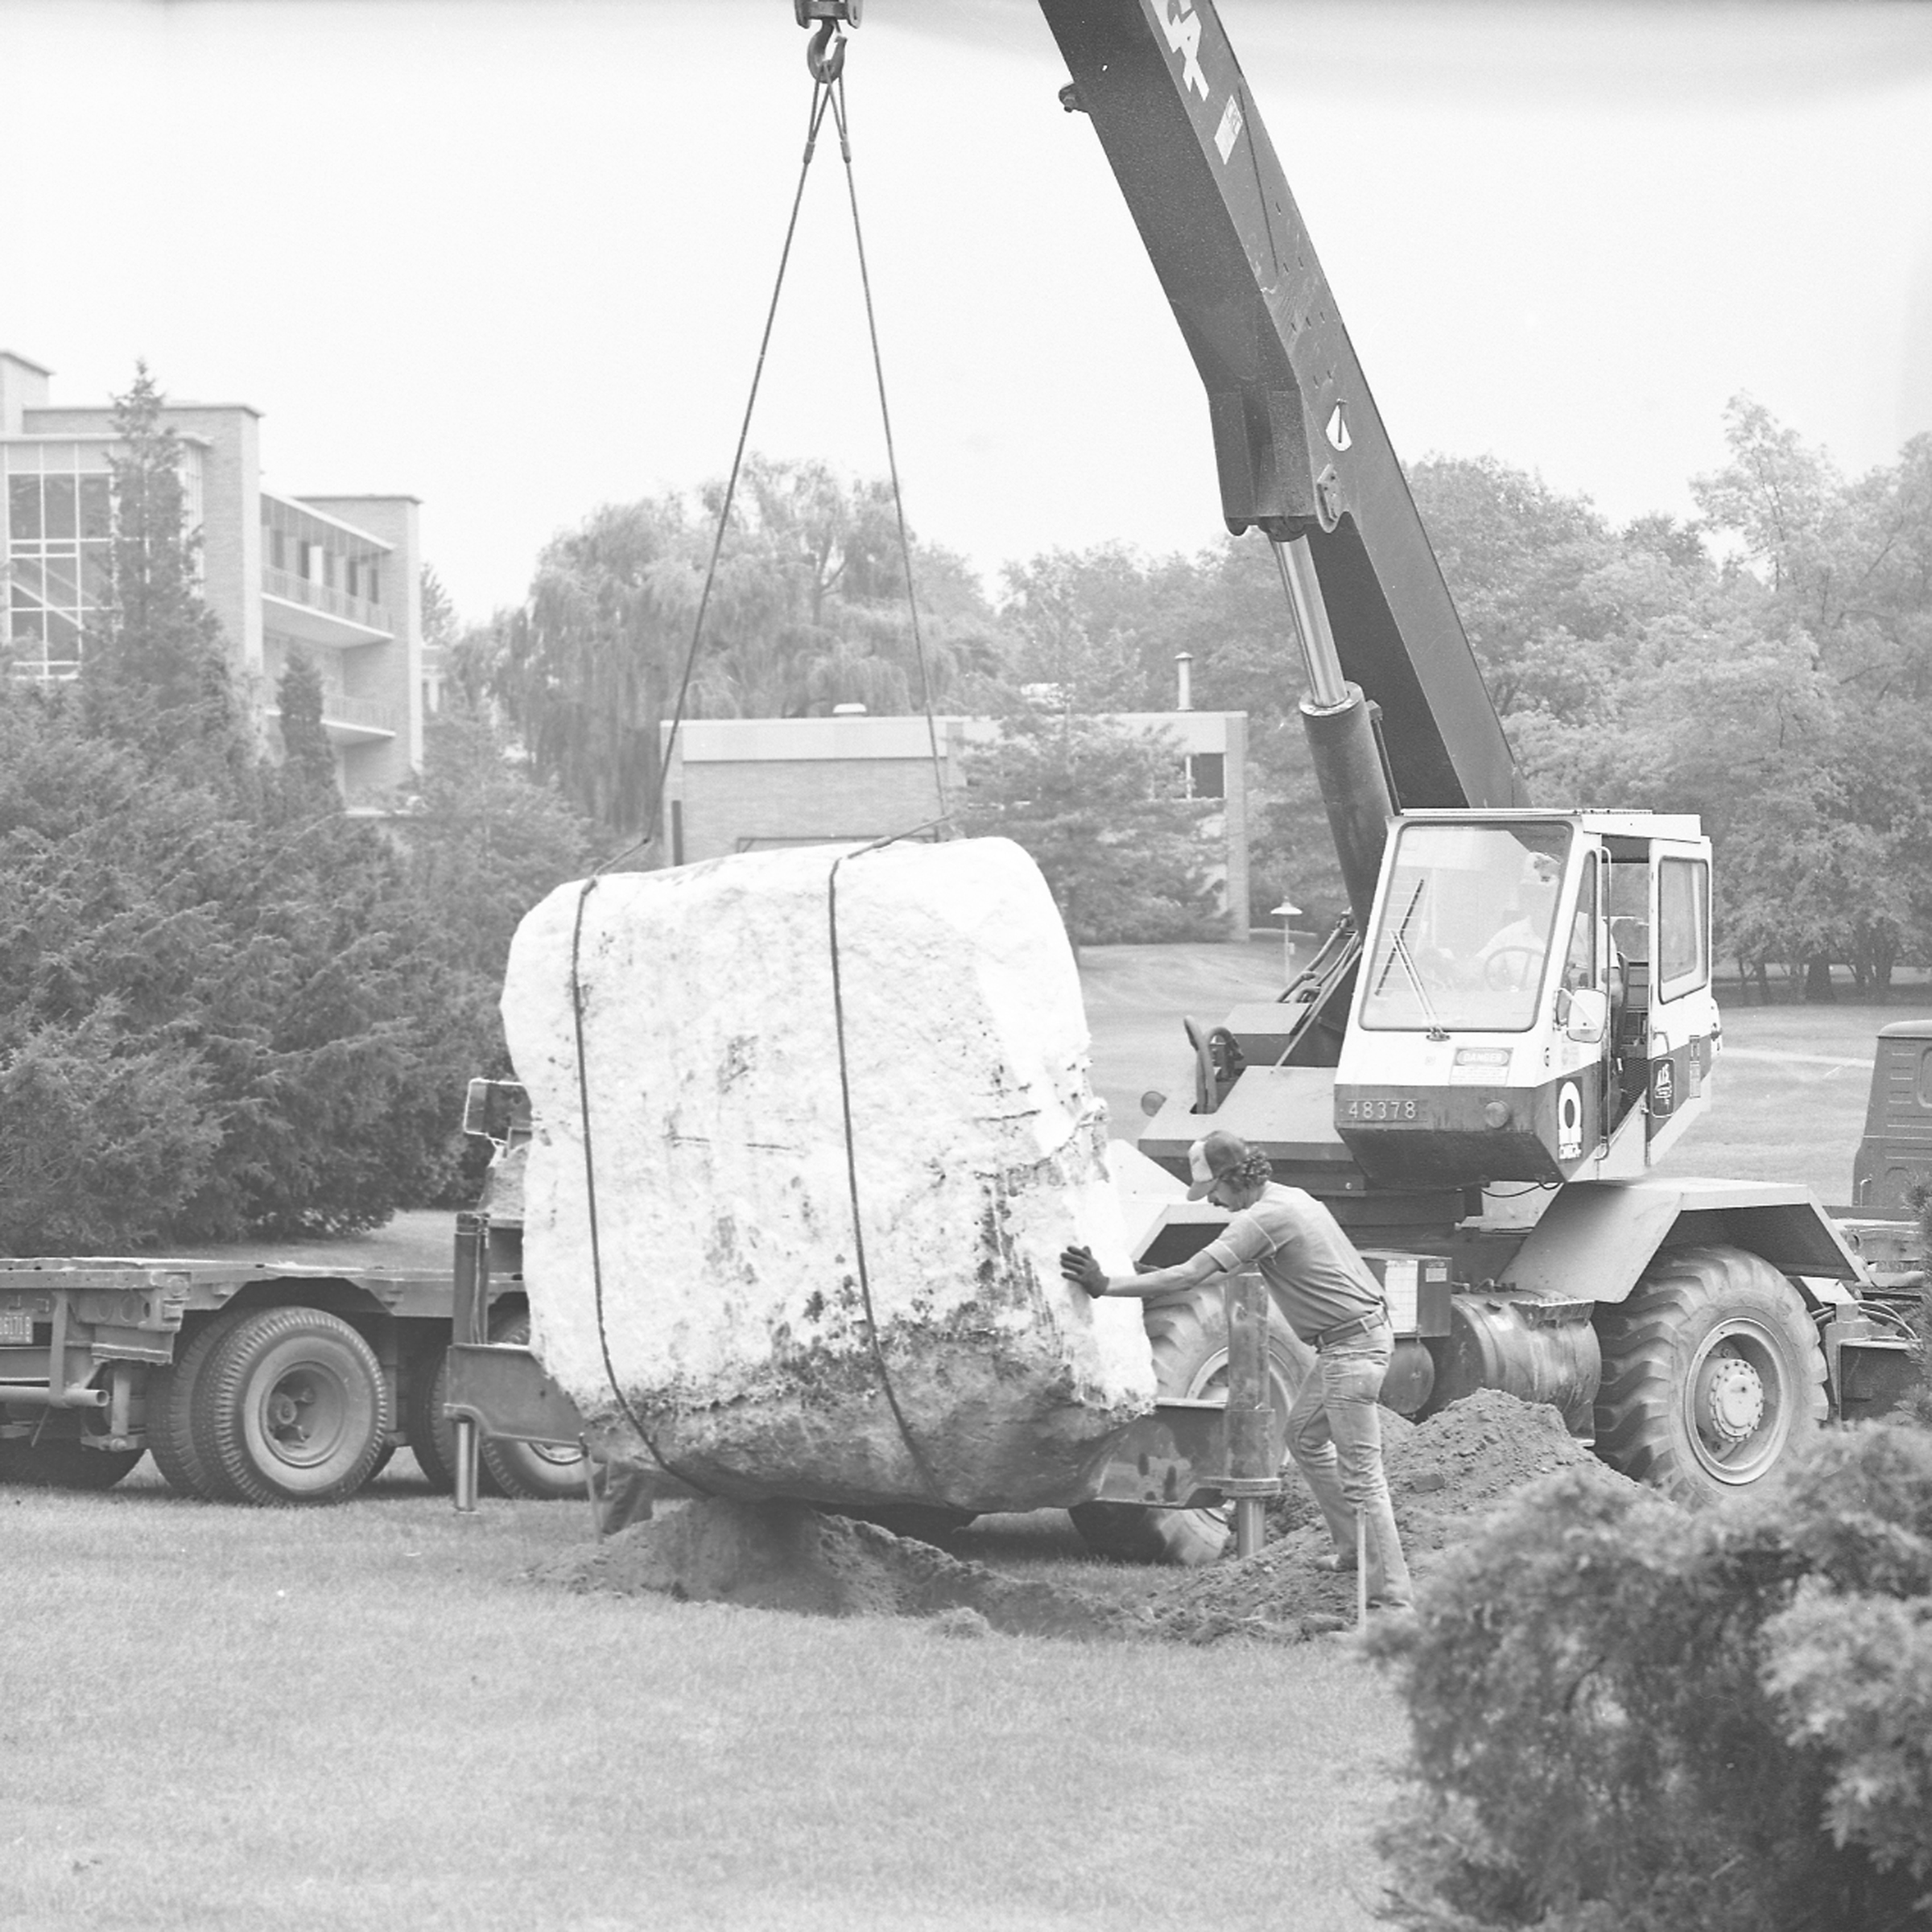 Relocating the Rock, September 17, 1985